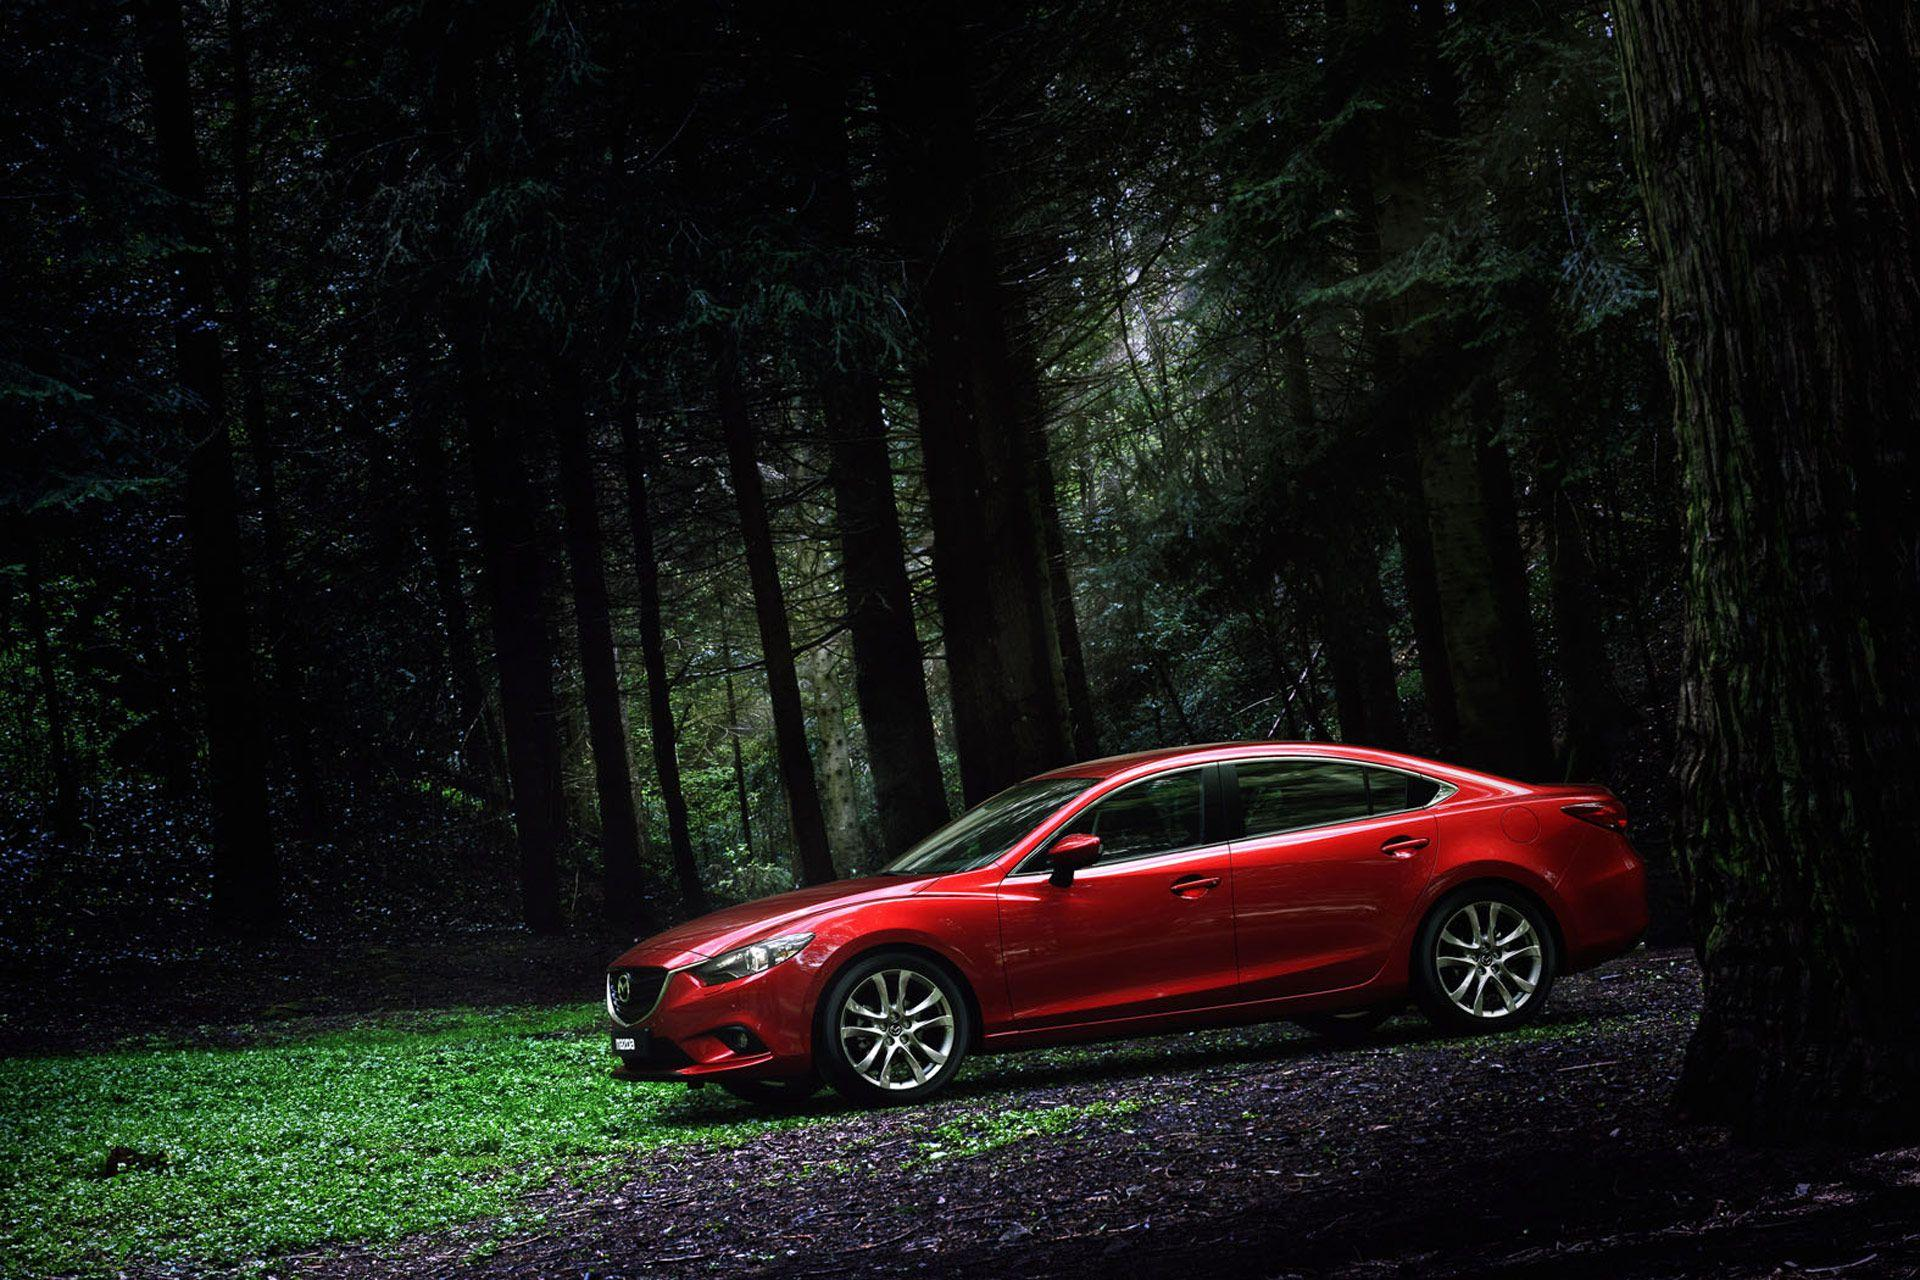 Mazda 6 HD Wallpaper | HD Wallpapers Pulse